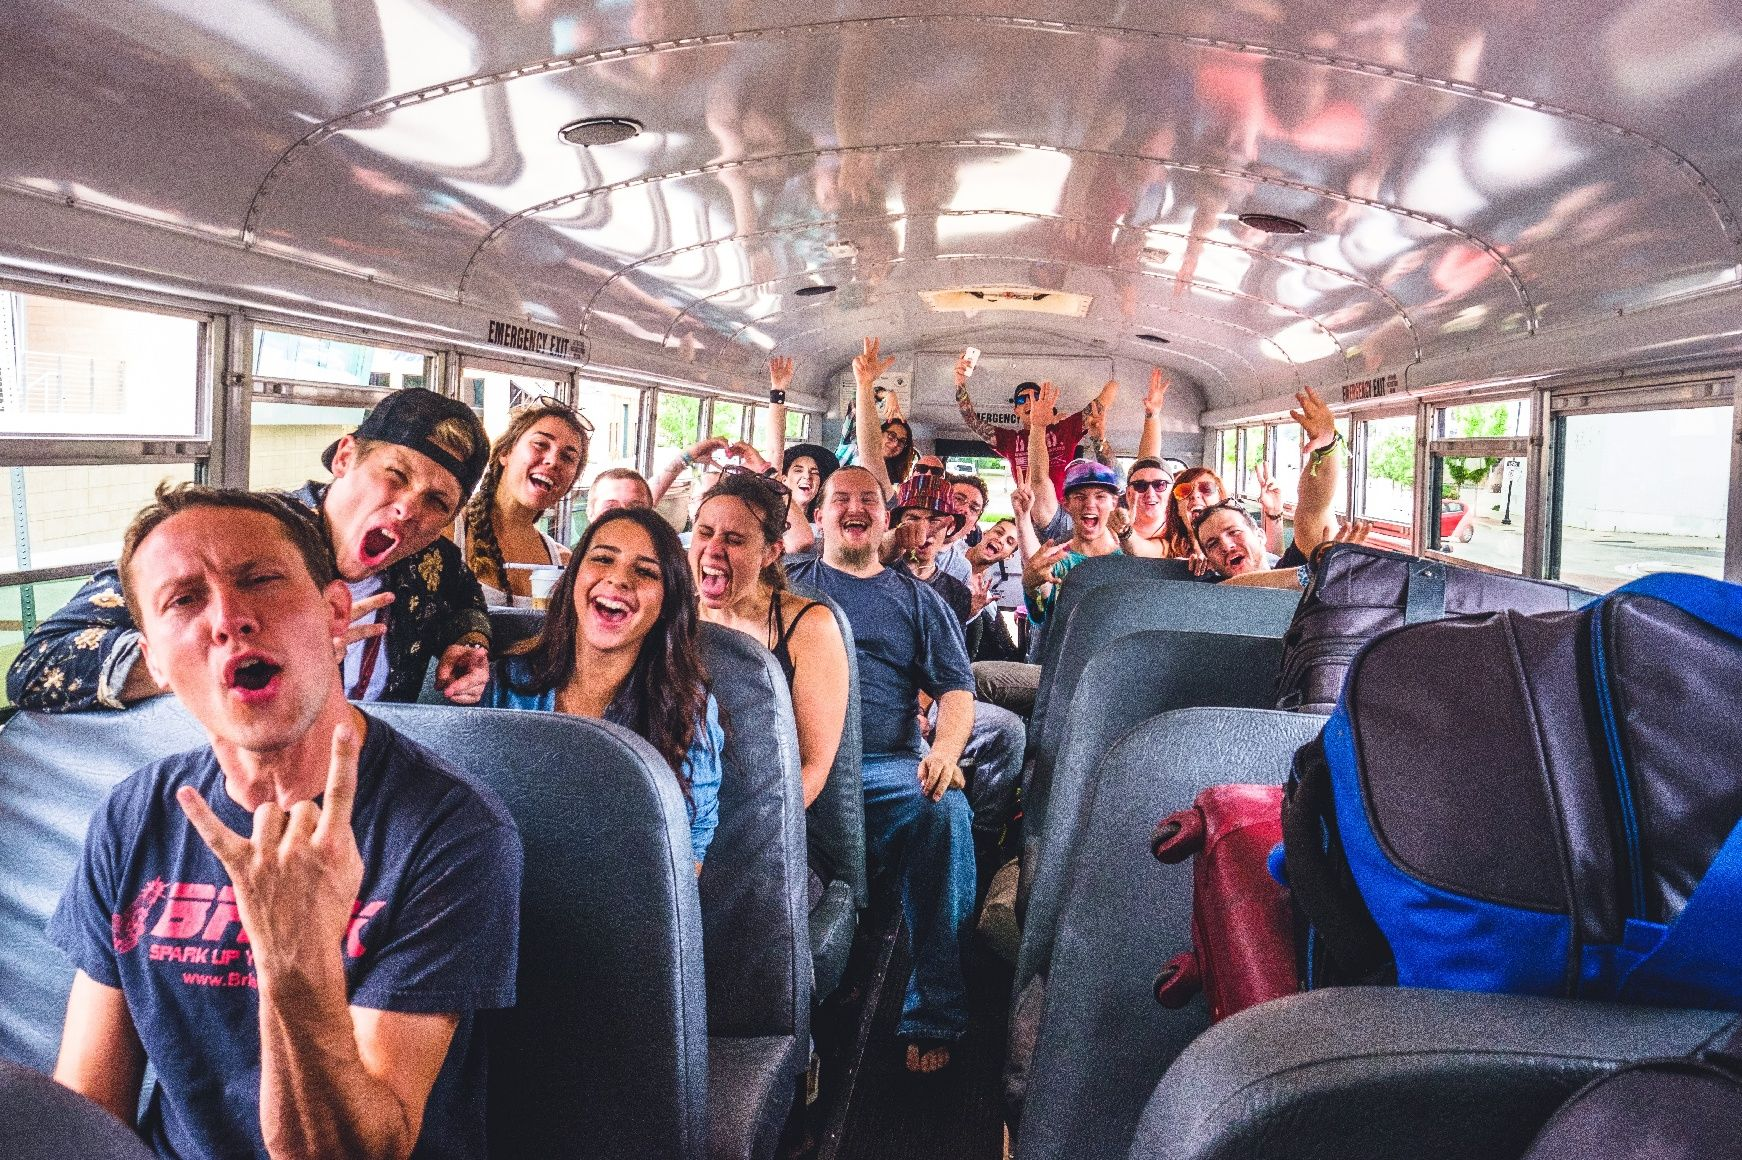 Group Games to Play on Long Bus Rides